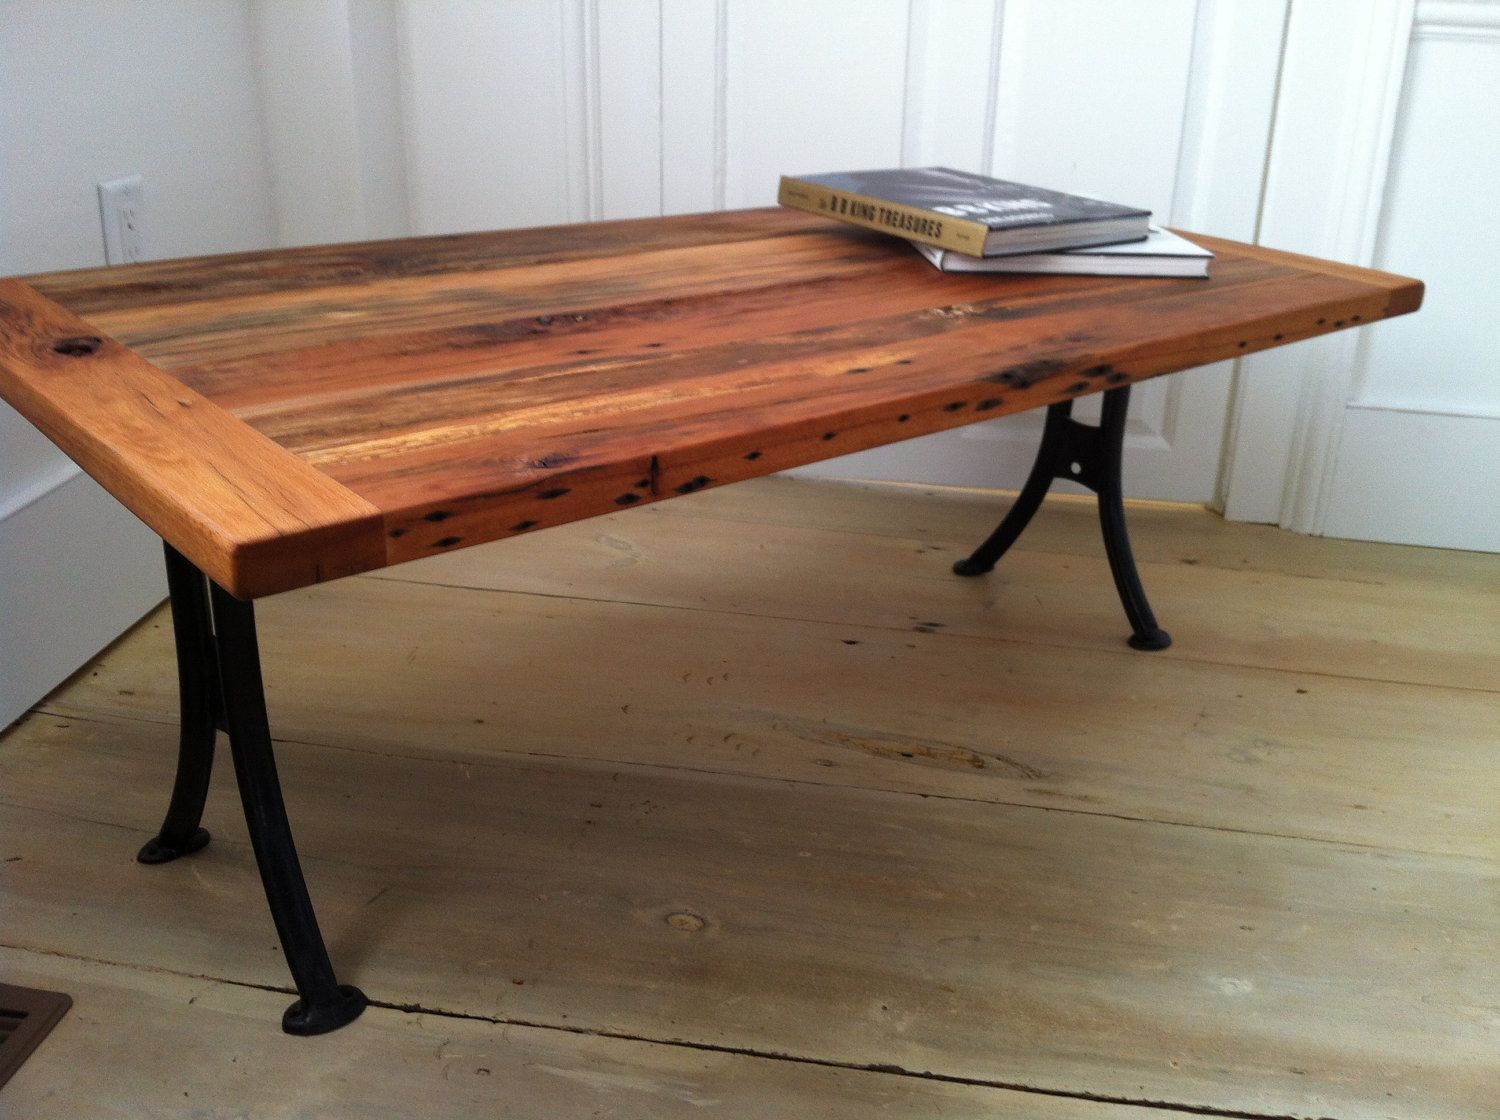 13 best barnwood coffee table ideas images on pinterest dinning reclaimed barnwood coffee table with antique school desk metal legs geotapseo Image collections